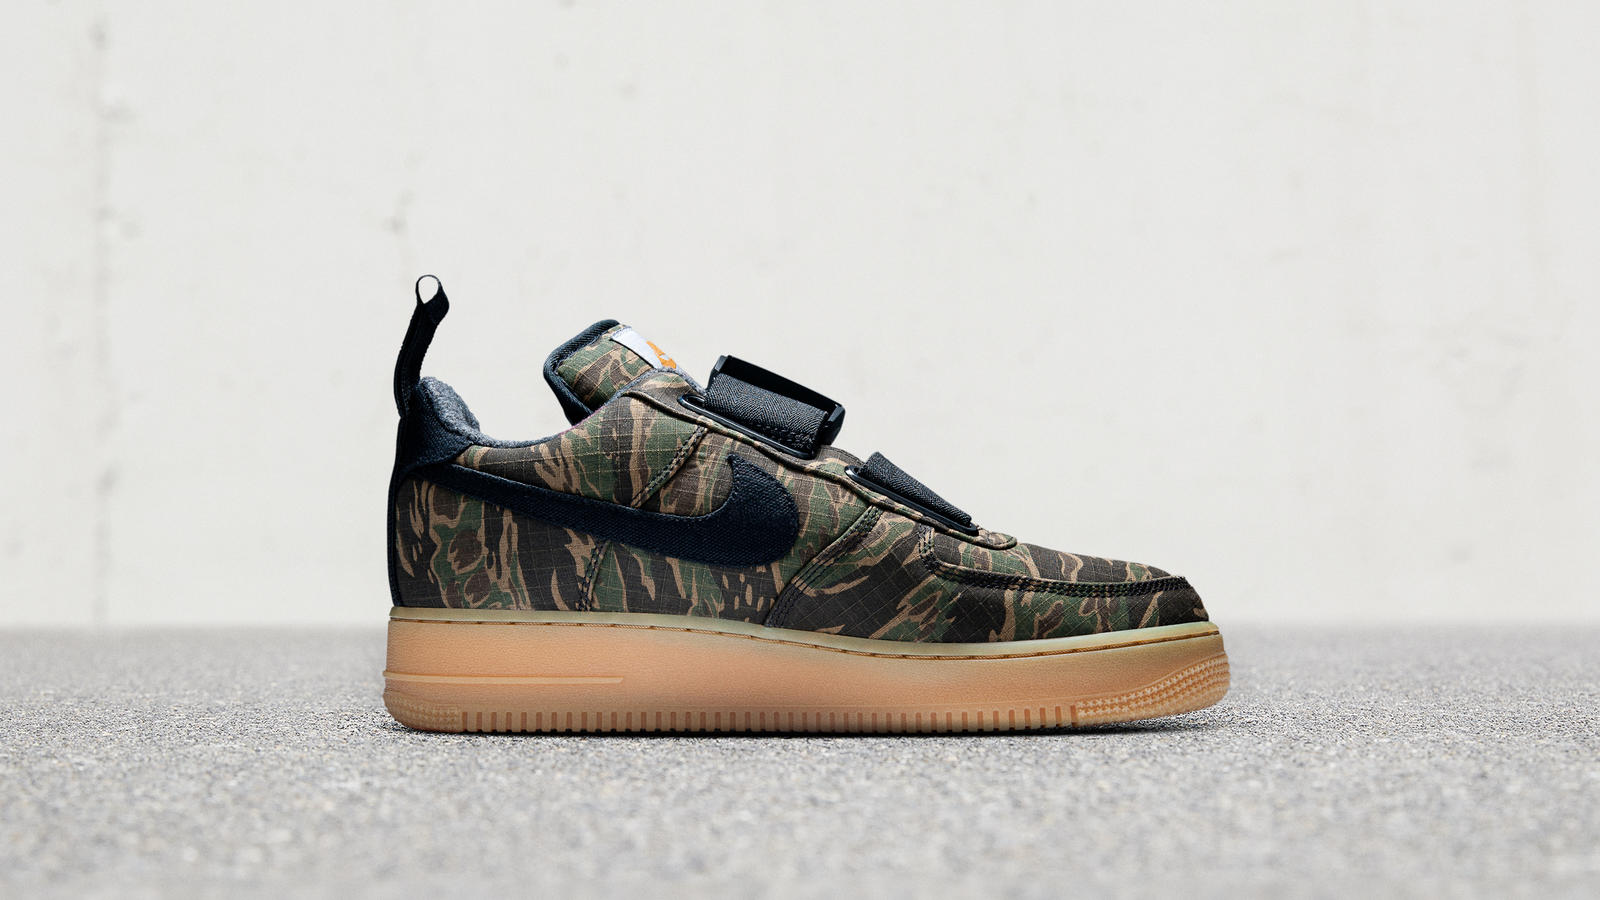 182e941f75 02_FeaturedFootwear_NSW_NikexCarhartt_10.12.18-679_hd_1600_2048x2048.jpg?v=1542396911